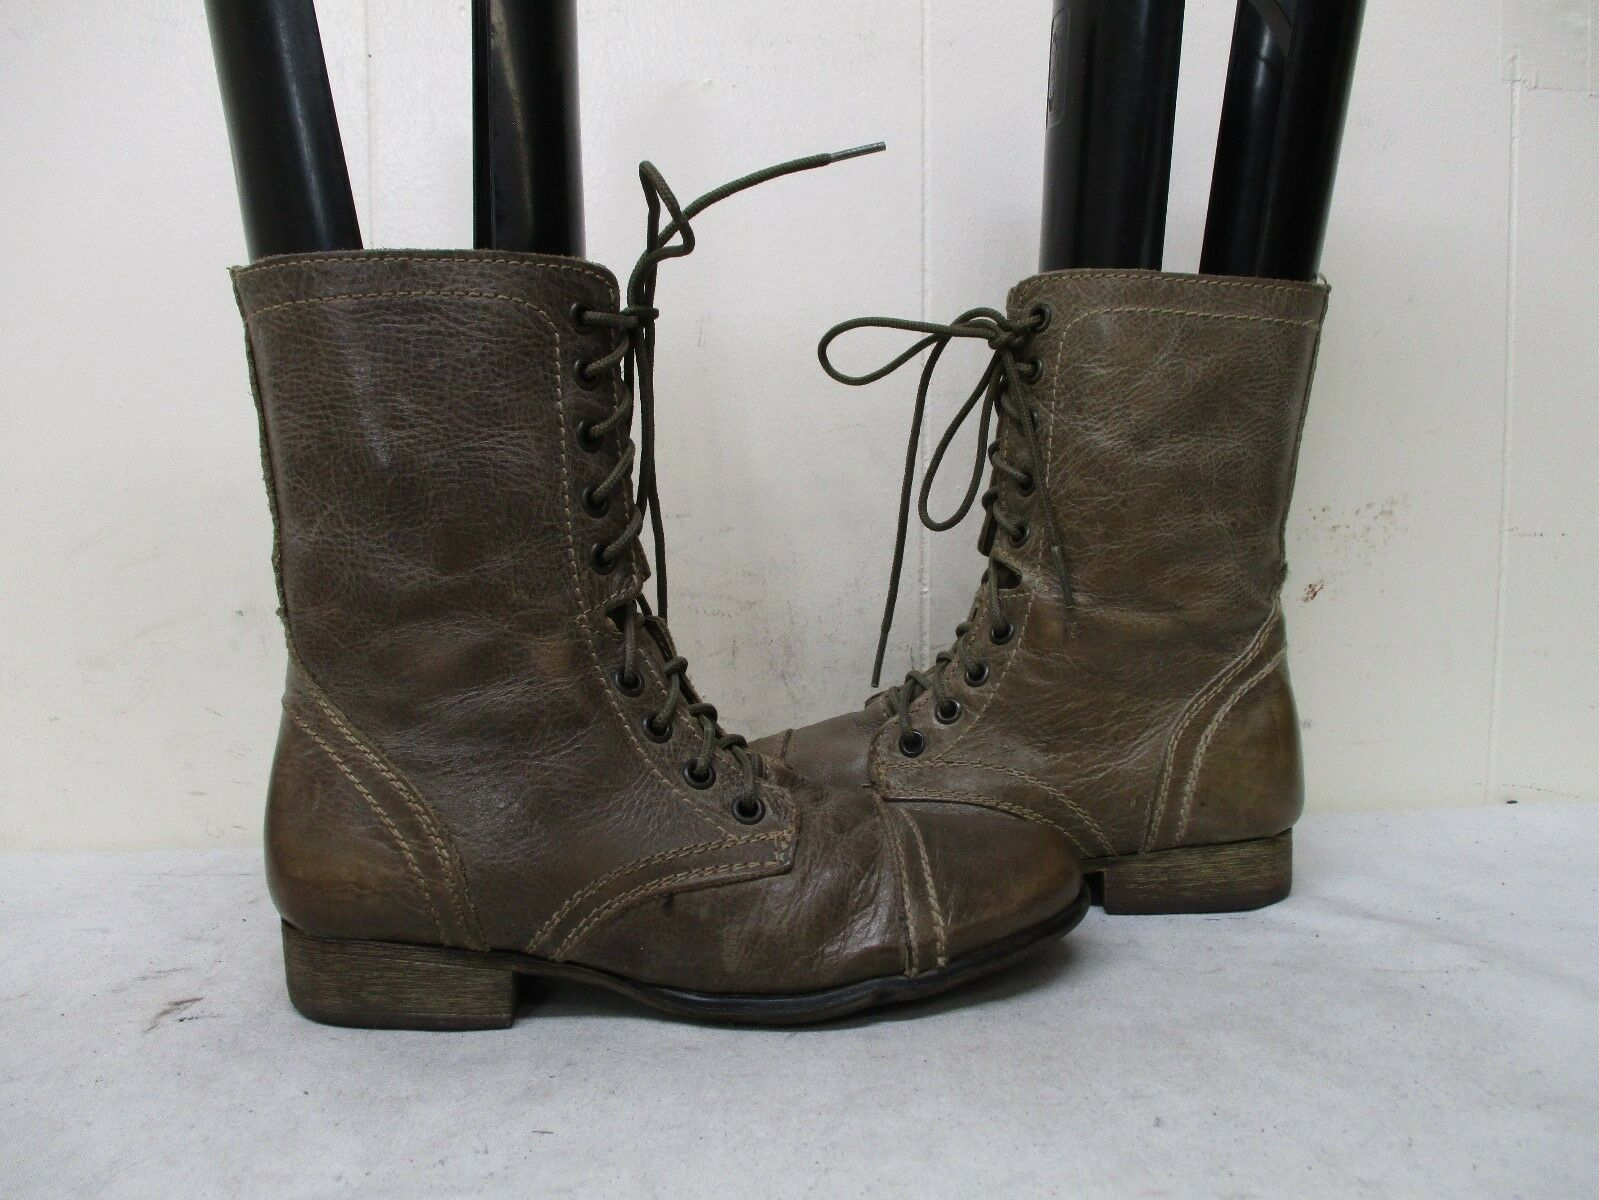 Steve Madden Troopa Stone Leather Zip Lace Combat Fashion Boots Size 6.5 M